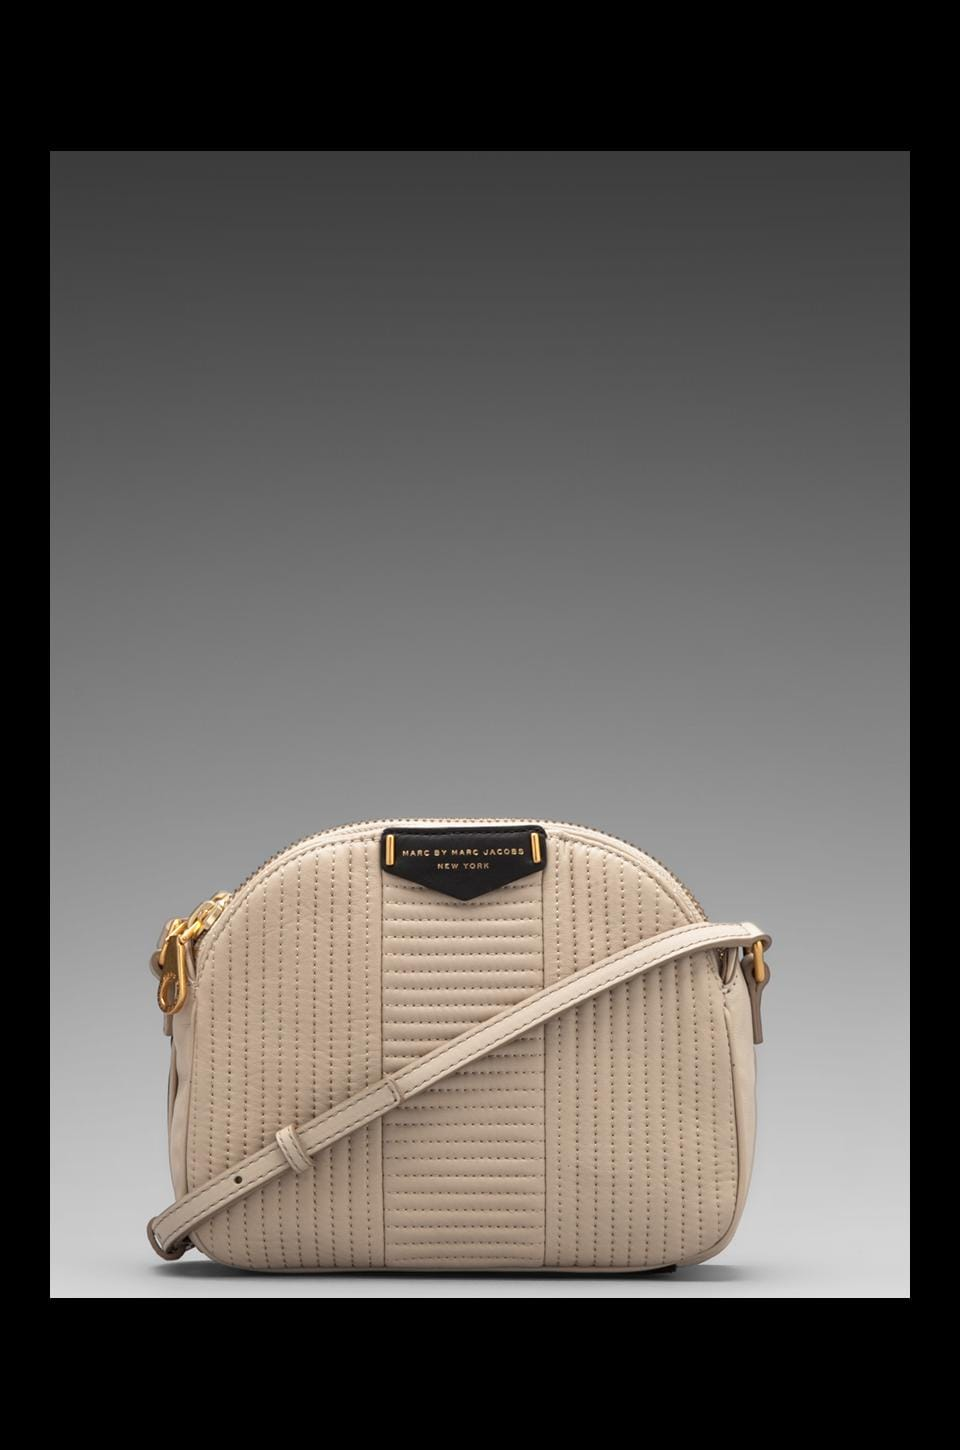 Marc by Marc Jacobs Downtown Lola Colorblocked Crossbody in Lightsand Multi